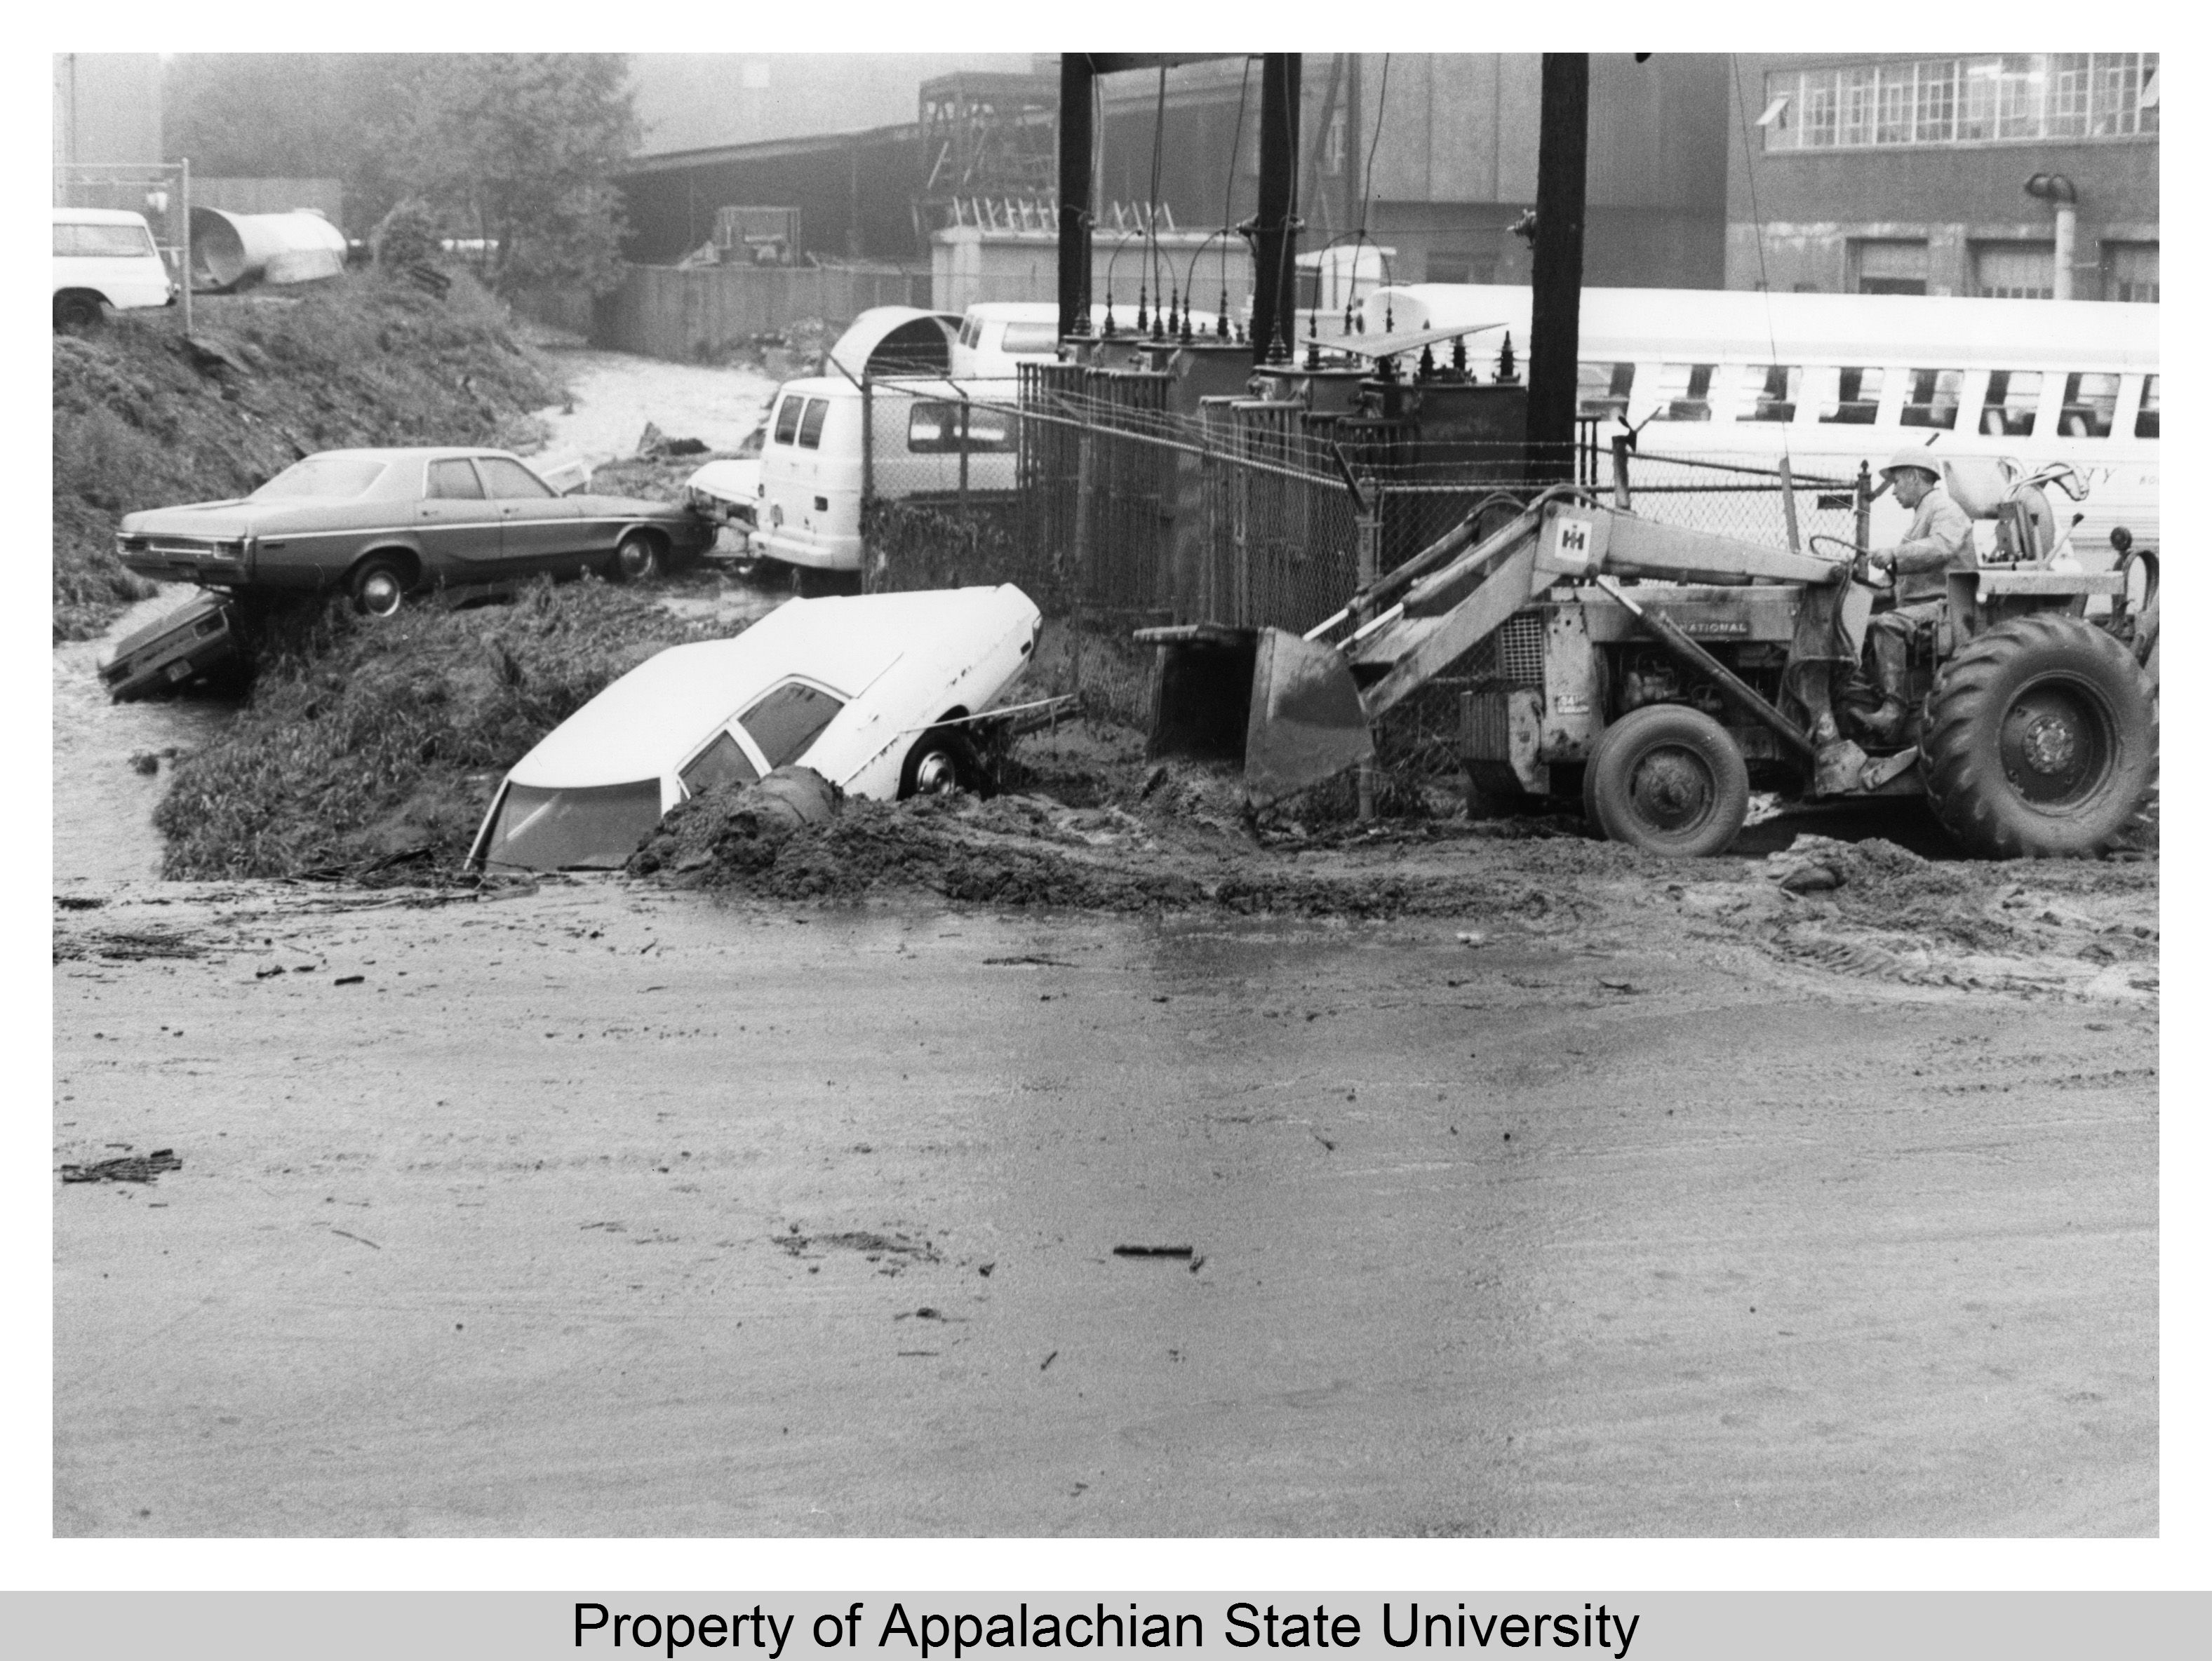 On May 28, 1973, the Kraut Creek on the southern end of campus flooded after 1.6 inches of rainfall and caused thousands of dollars of property damage